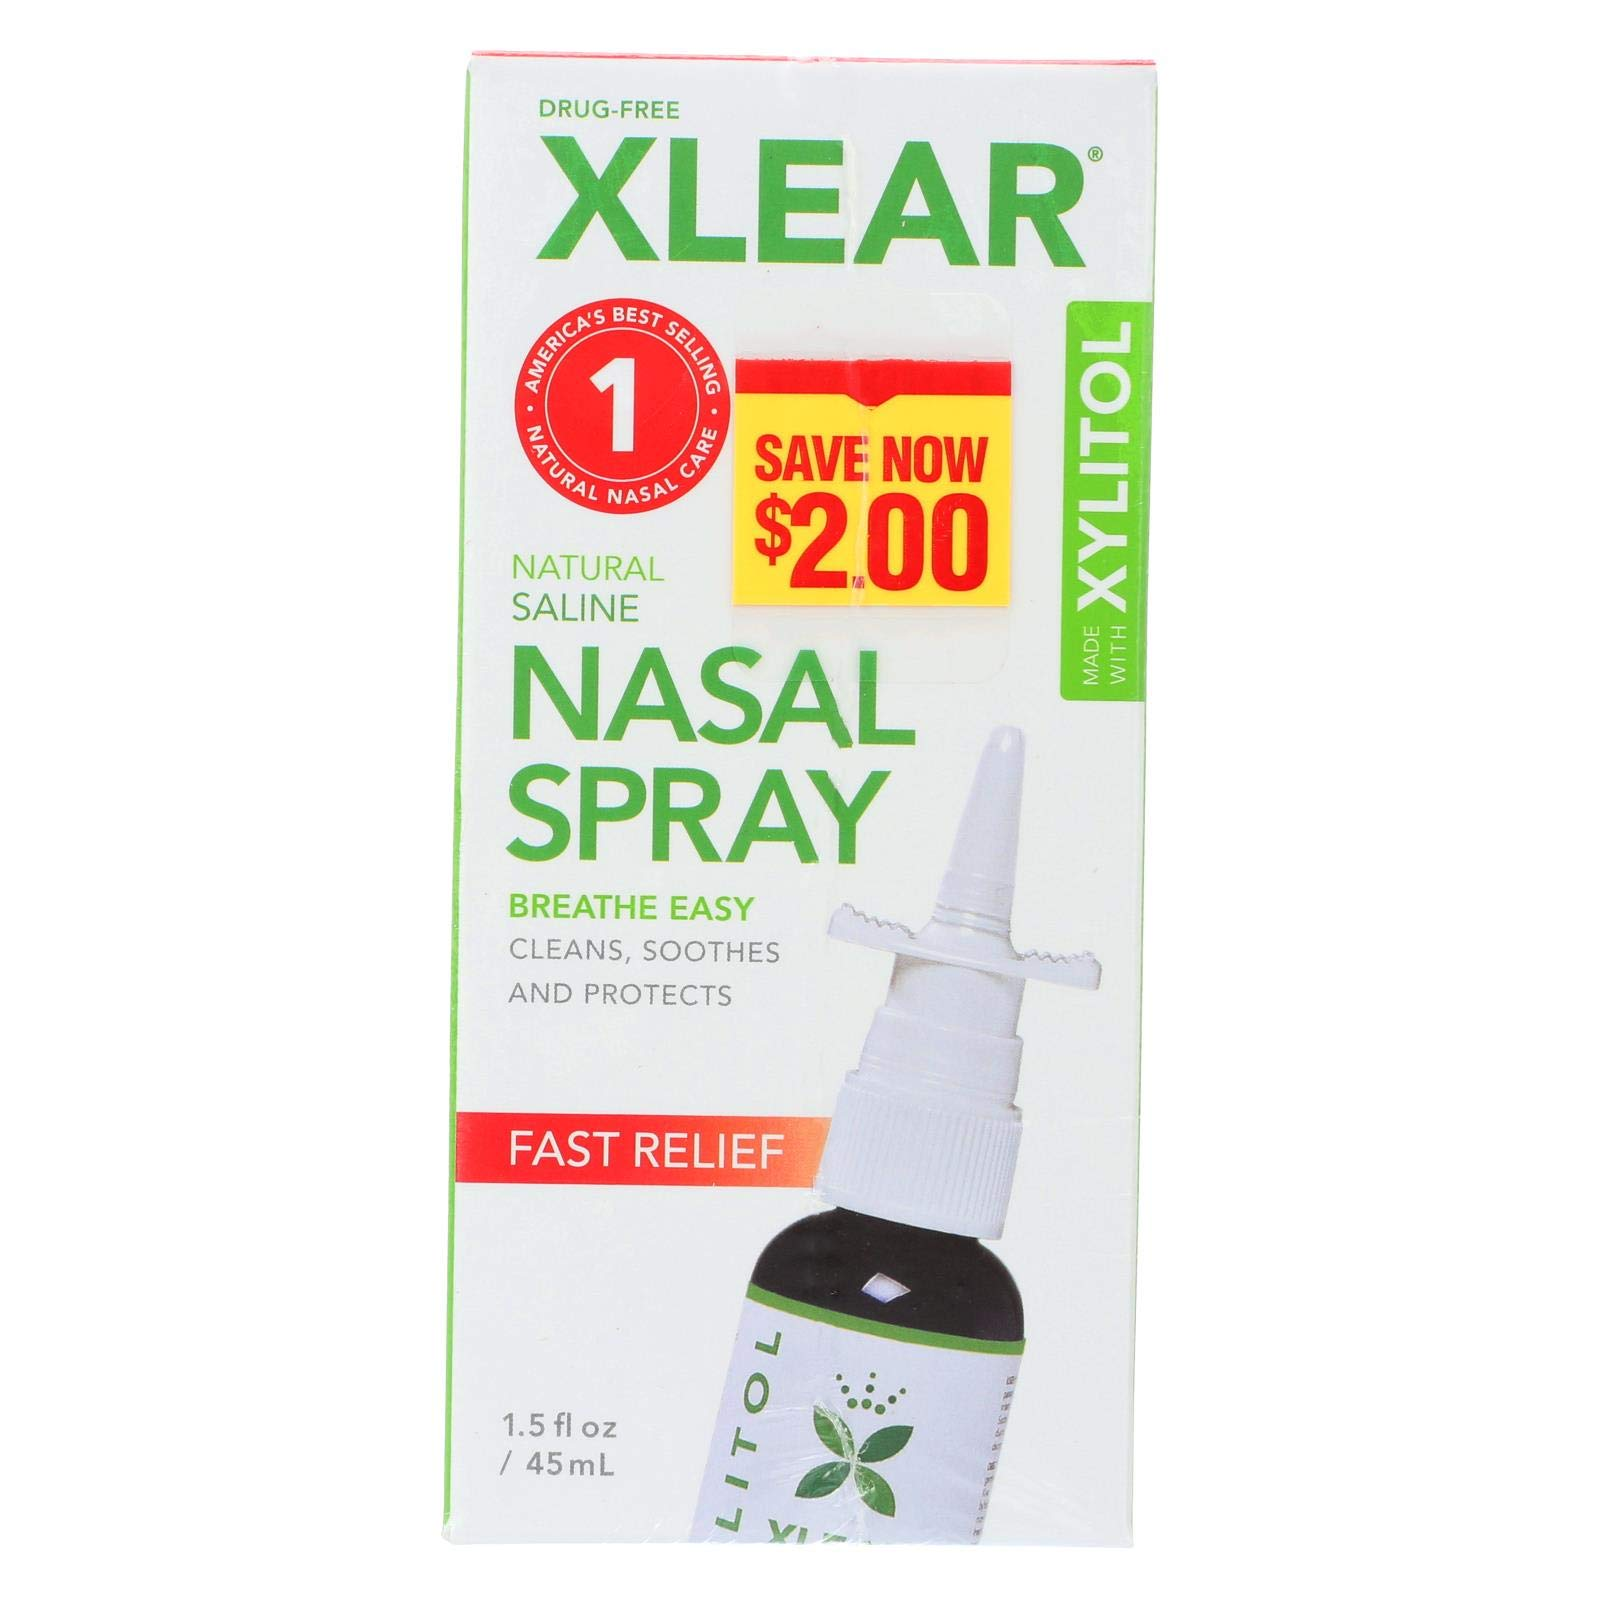 Xlear, Nasal Spray, Pack of 12, Size - 1.5 FZ, Quantity - 1 Case by Xlear